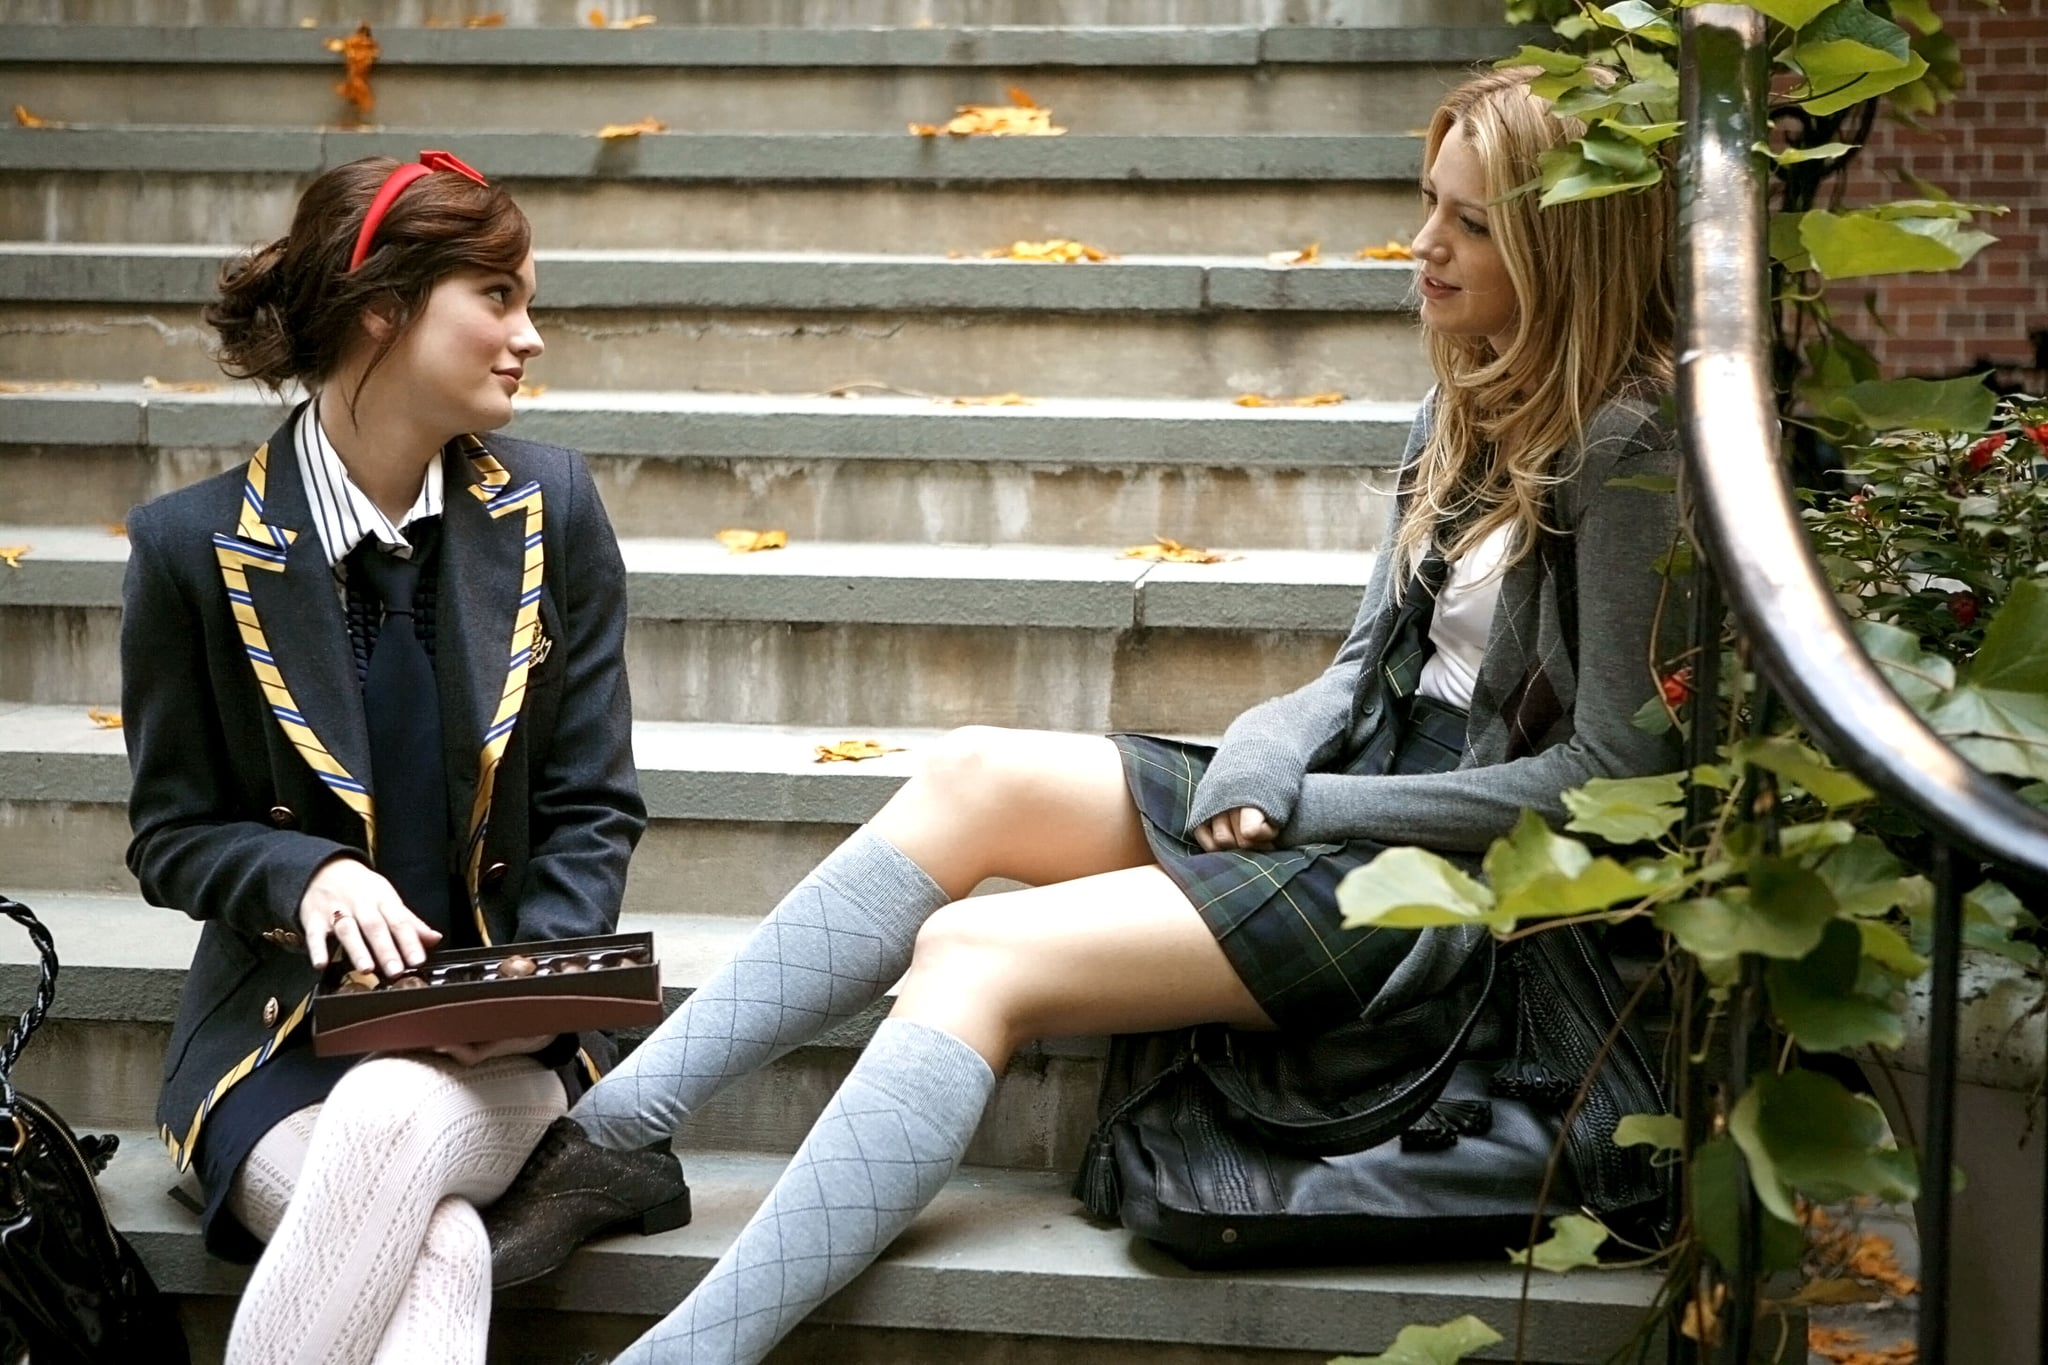 GOSSIP GIRL, Leighton Meester, Blake Lively (Season 1, 2007), 2007-,.  THE CW / courtesy everett collection